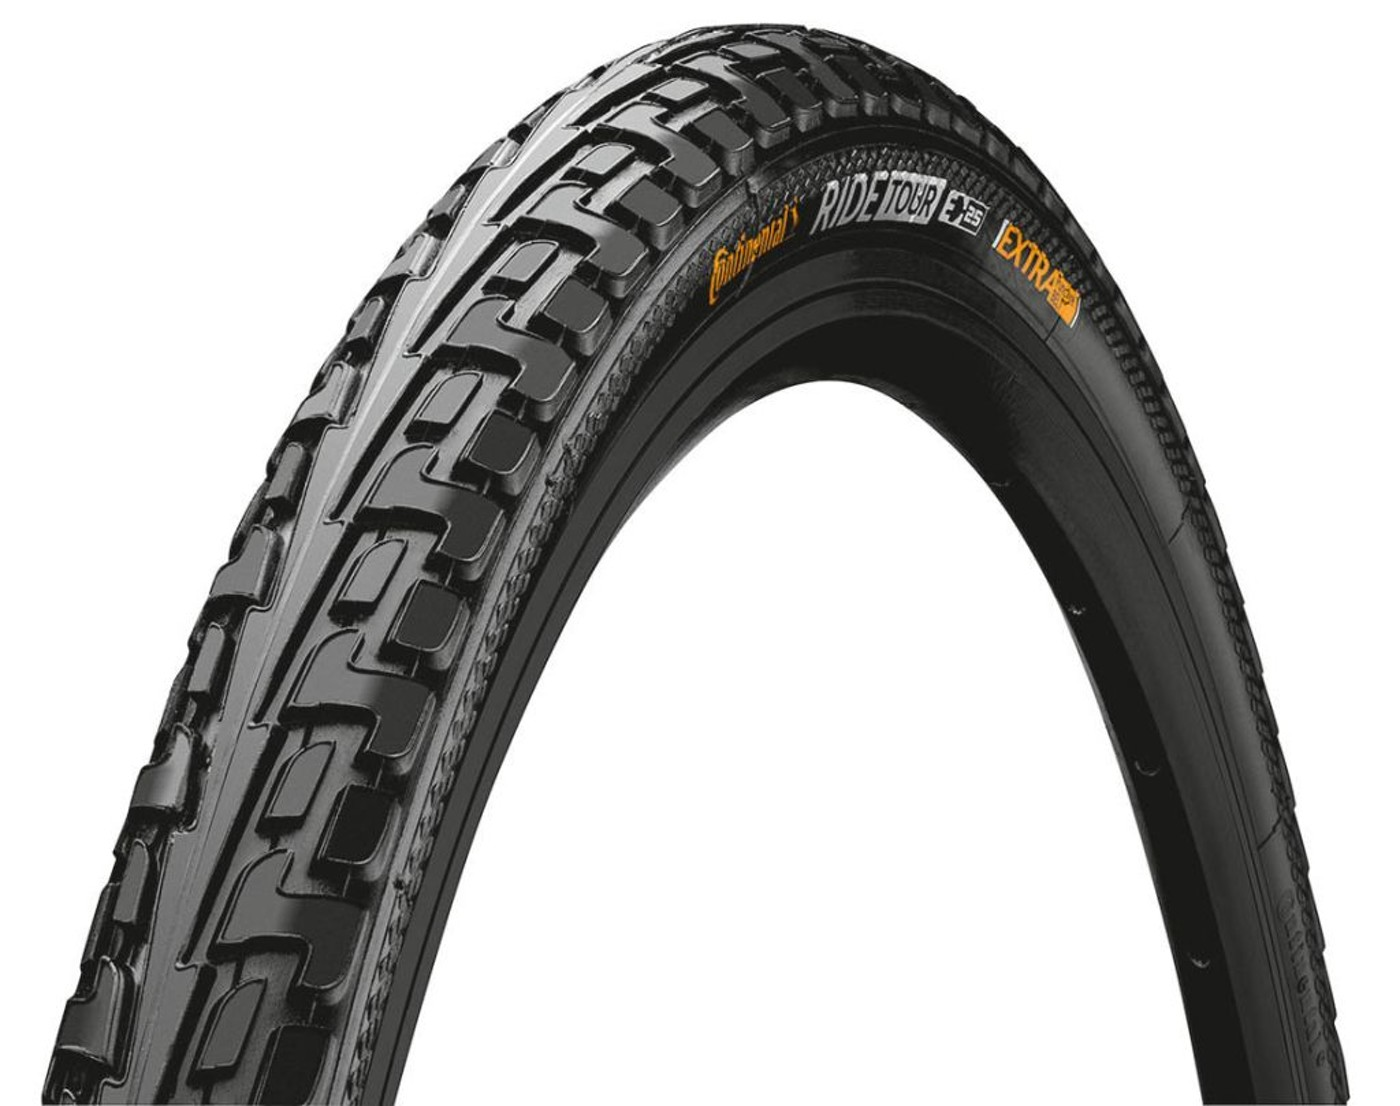 CONTINENTAL Drahtreifen RIDE TOUR 26x1 1/2